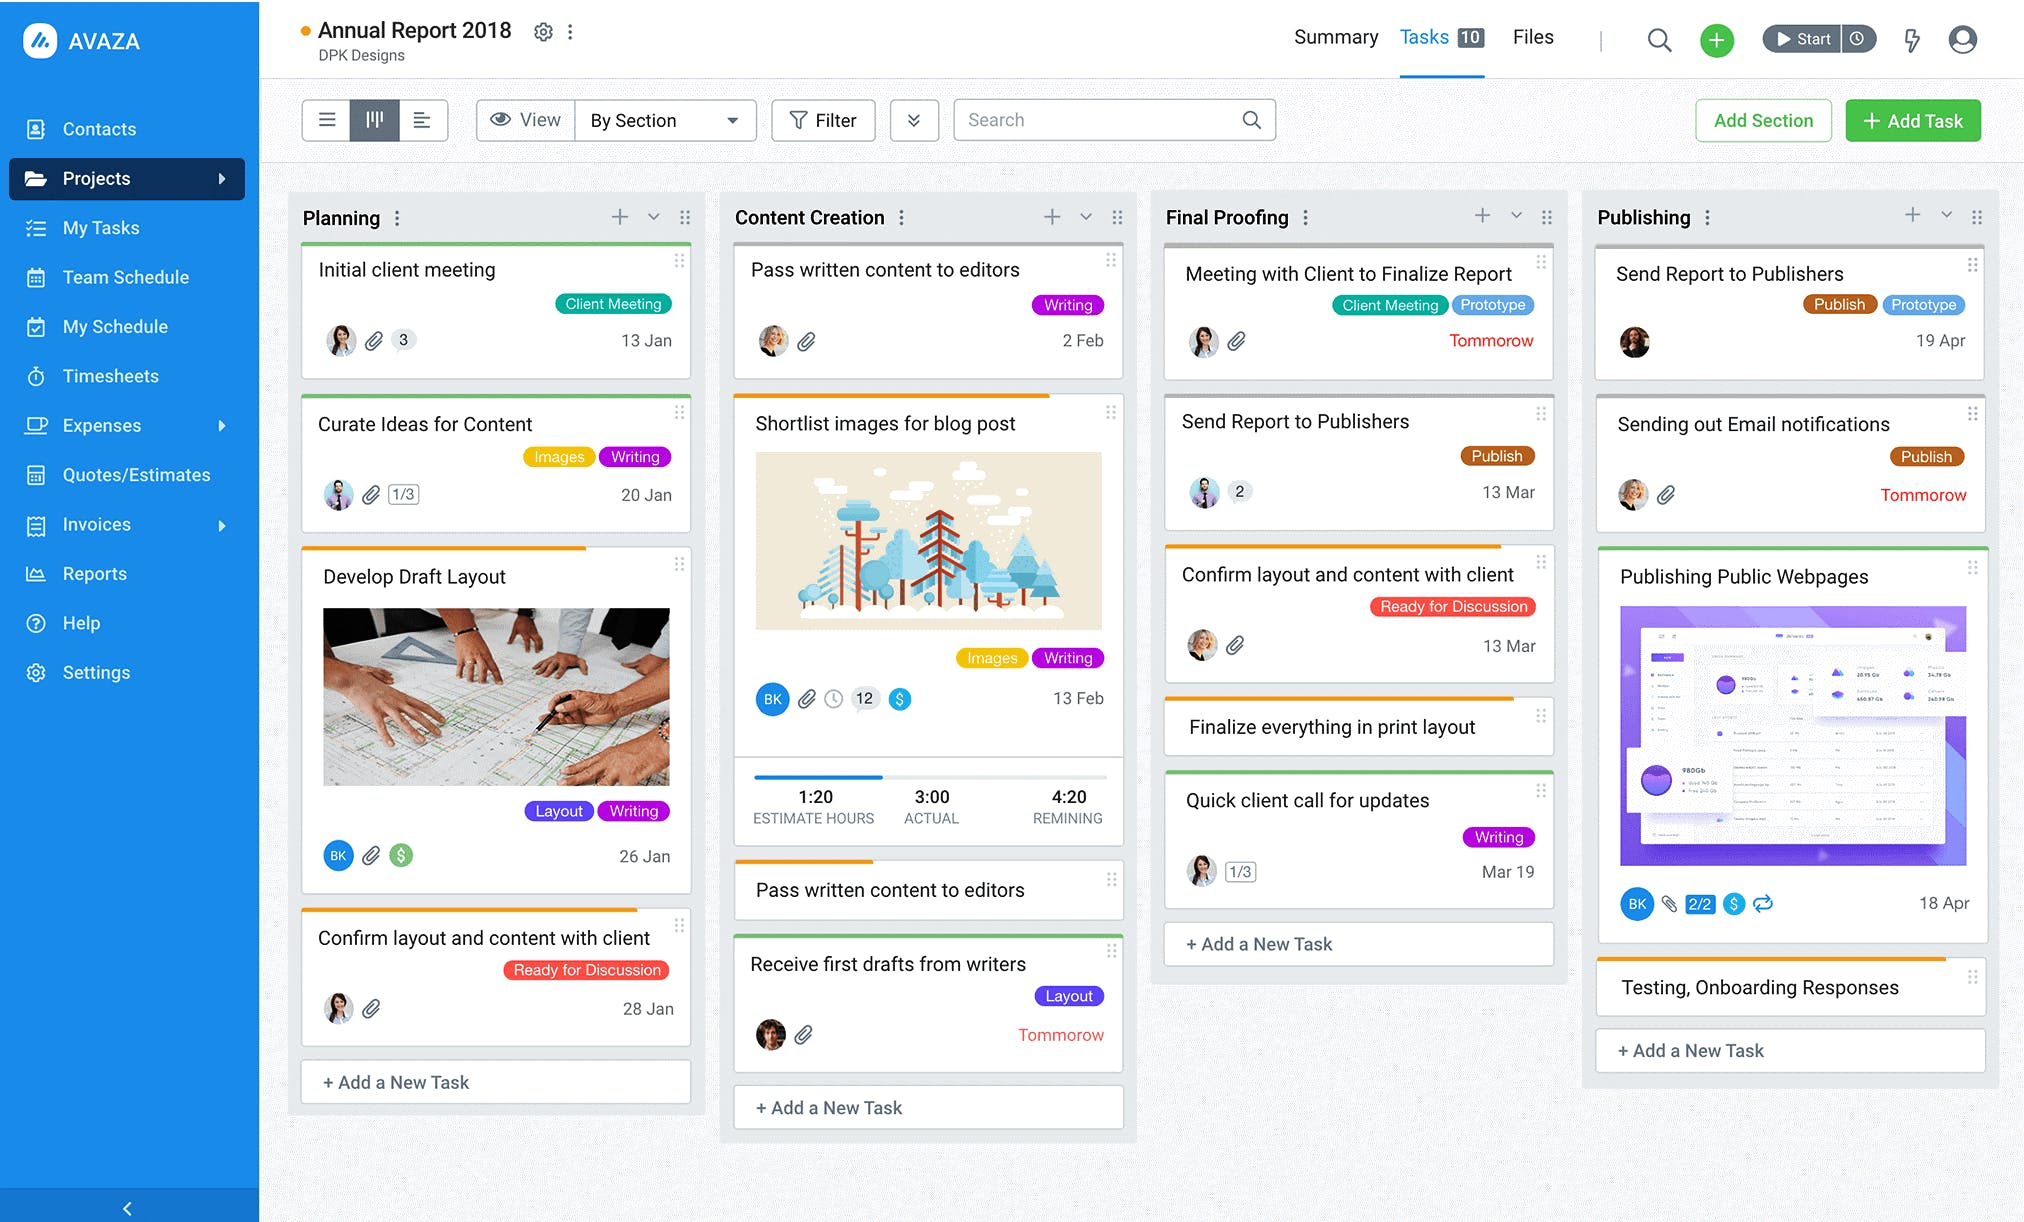 Kanban weergave in Avaza project management software